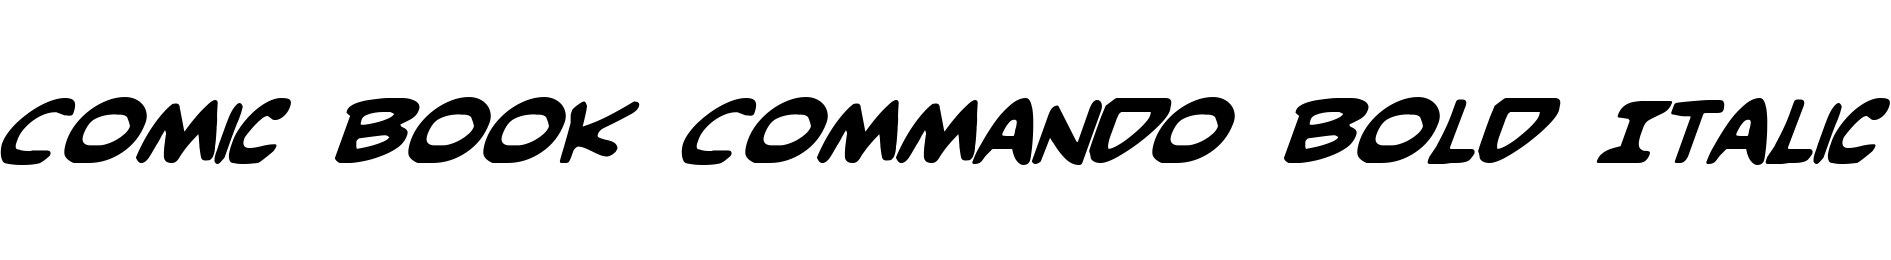 Comic Book Commando Bold Italic